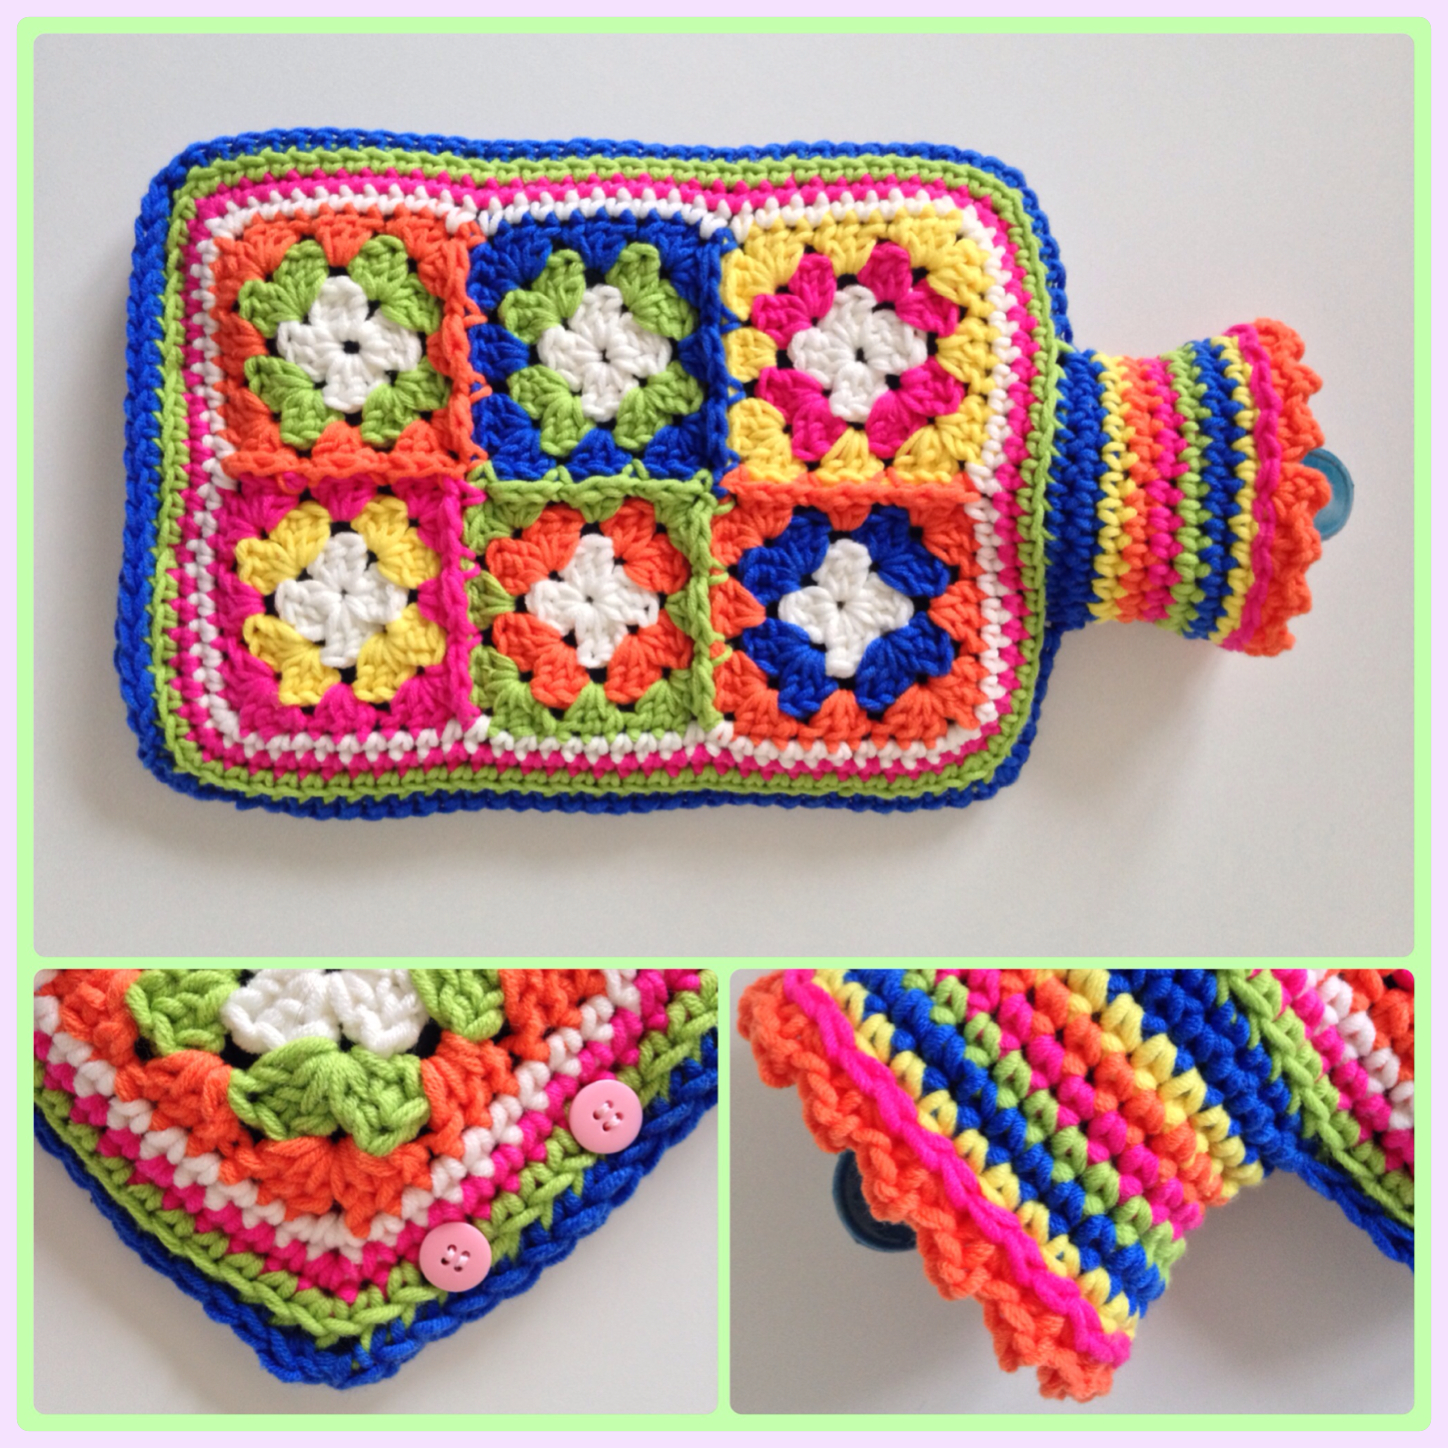 Free Crochet Patterns For Jug Covers : Hot water bottle cover maRRose ? Colorful Crochet & Crafts